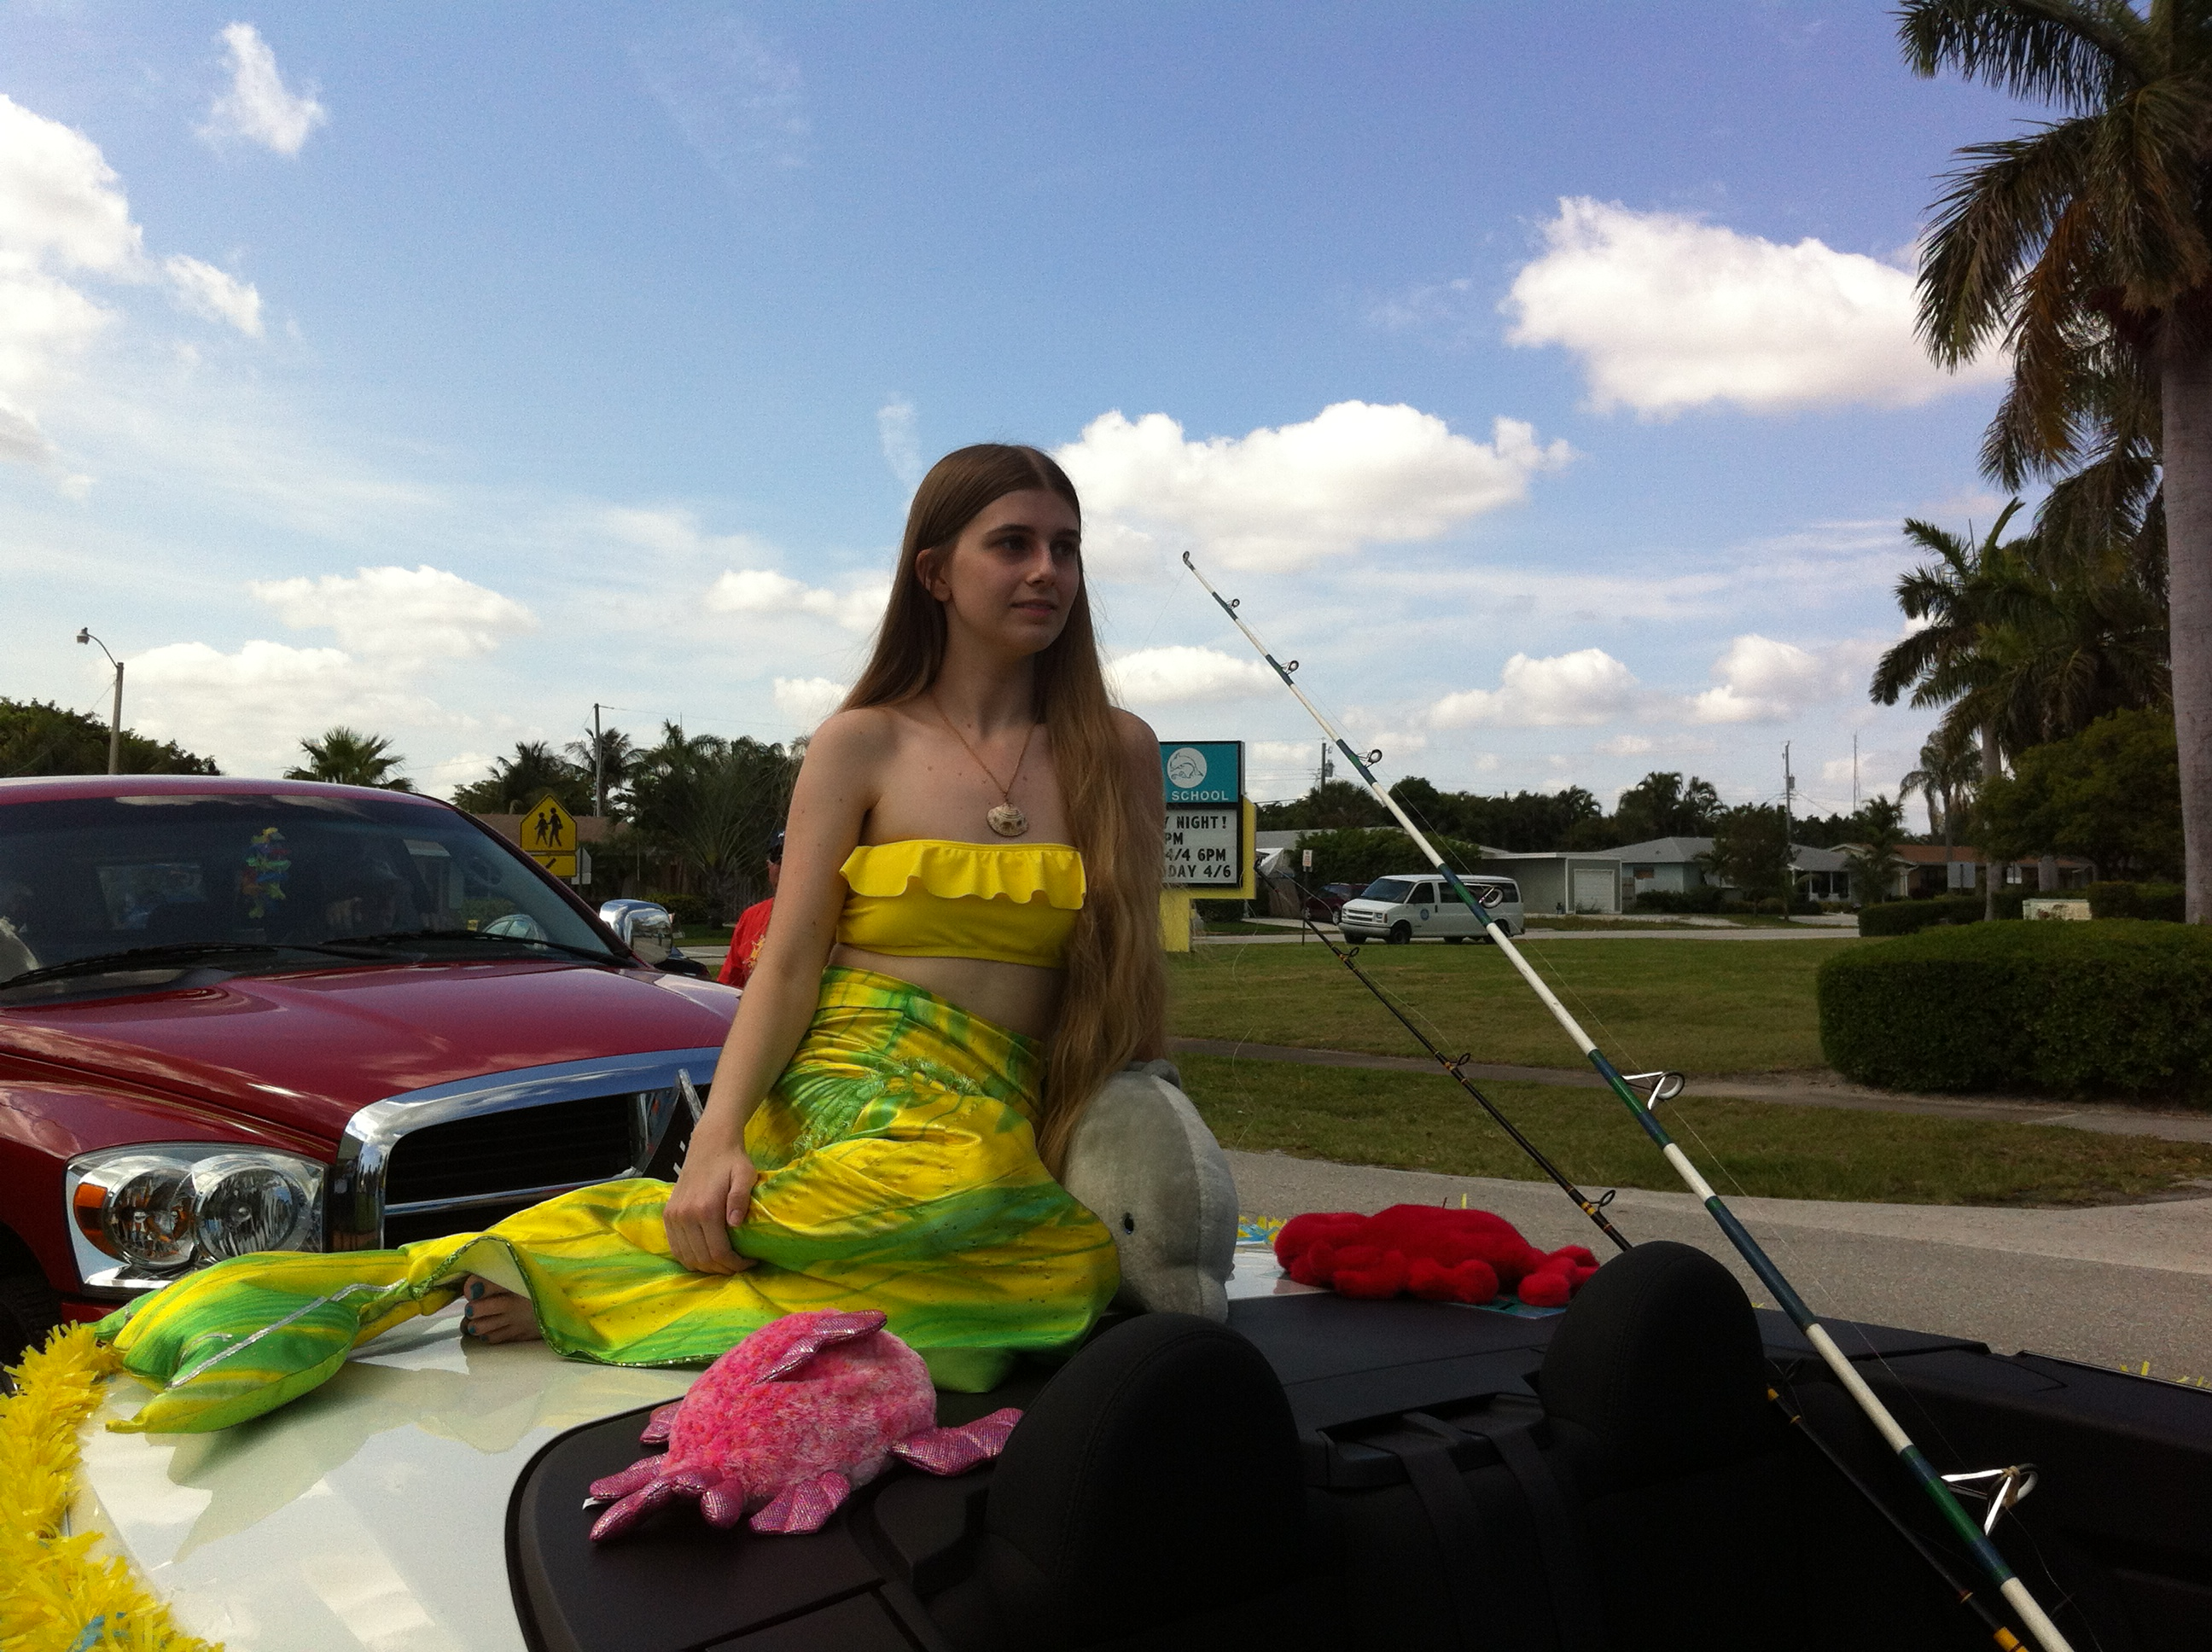 The mermaid sits on the back of the car during the parade